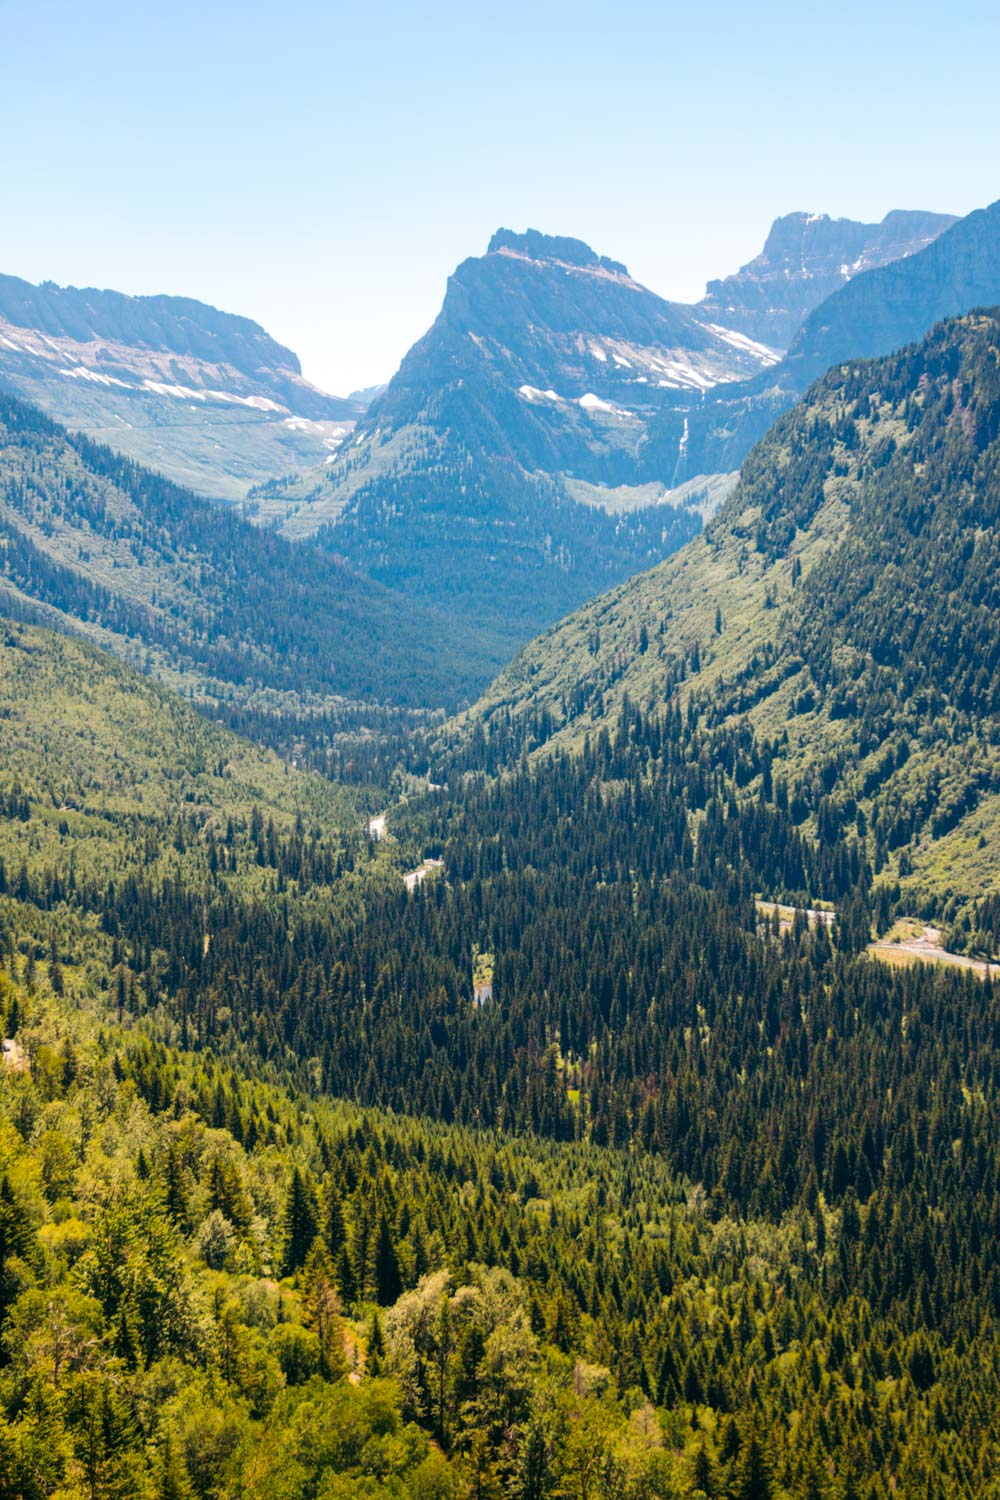 Going-to-the-Sun Road - Roads and Destinations